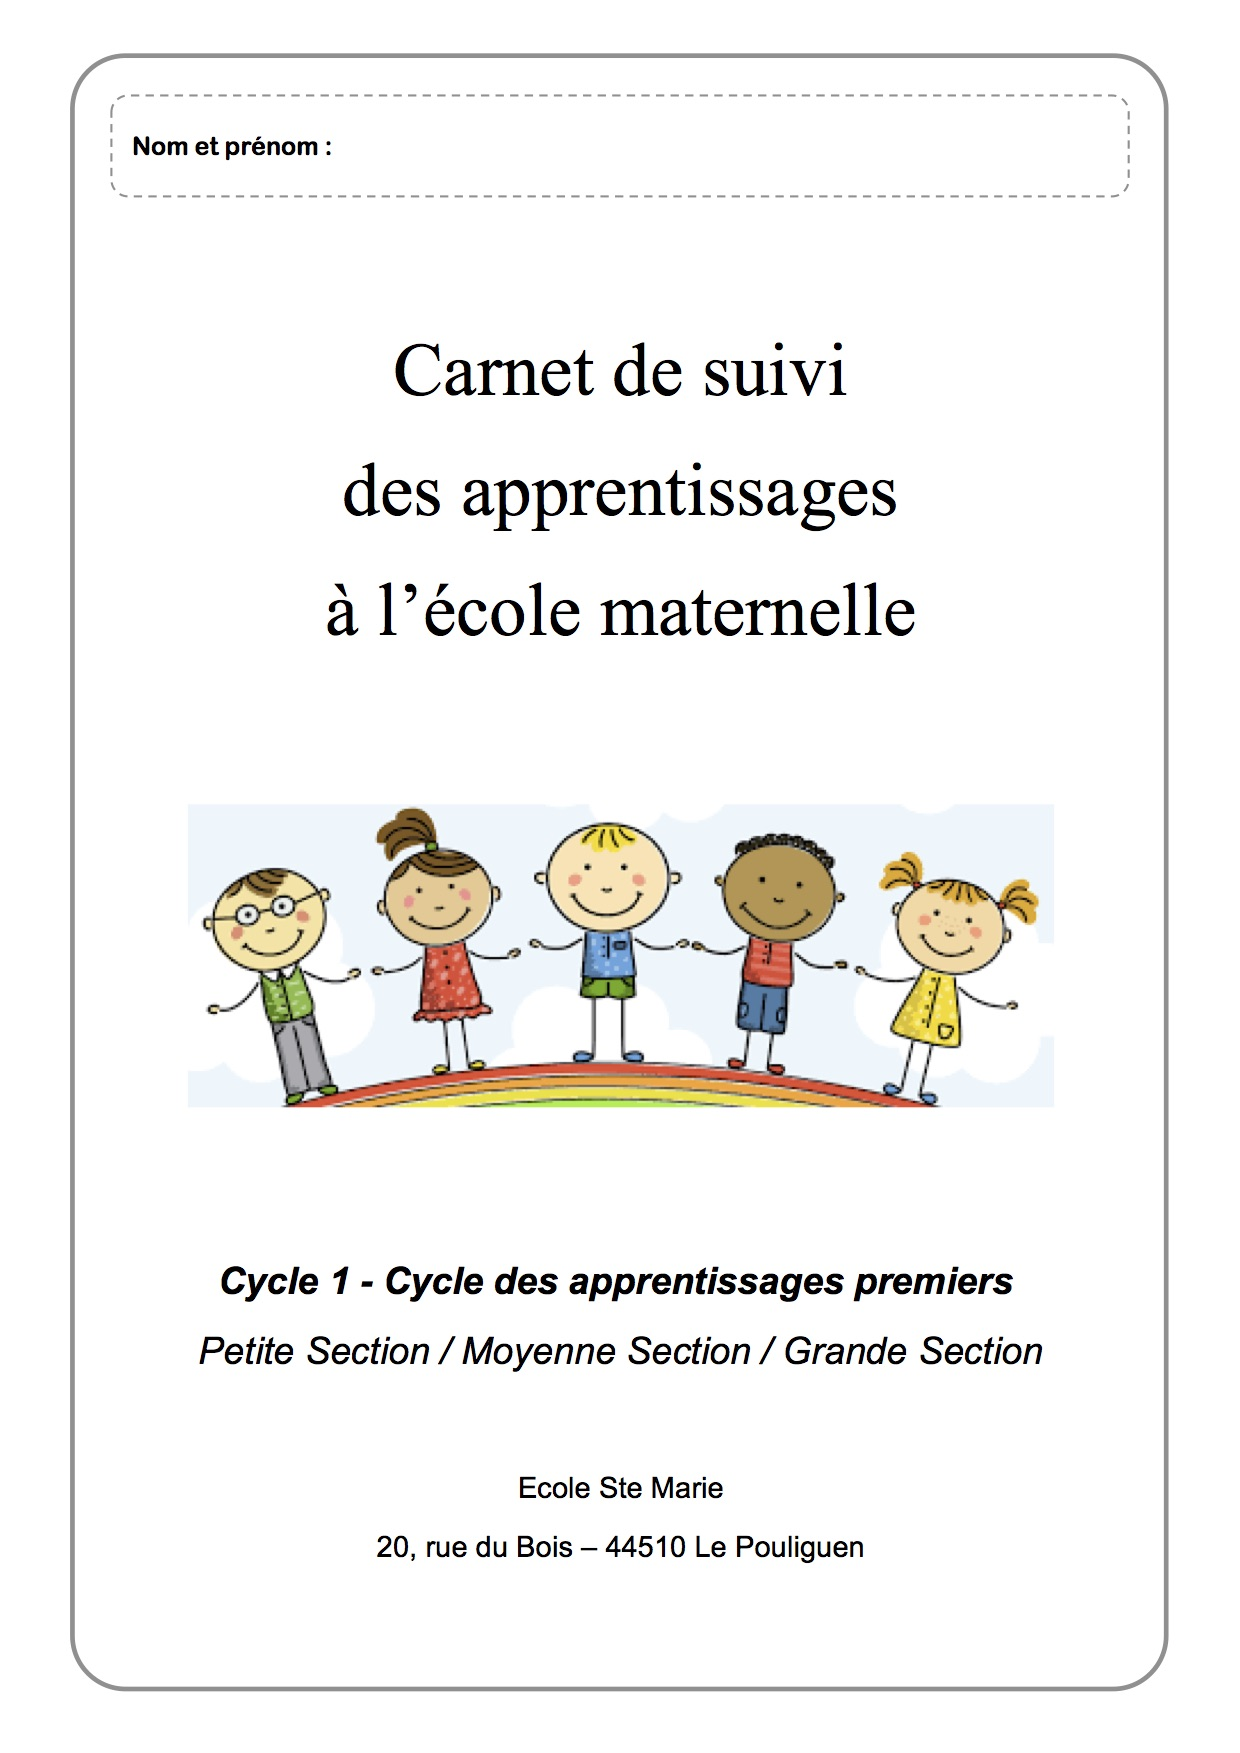 Carnet De Suivi Cycle 1 Ps Ms Gs La Classe De Luccia